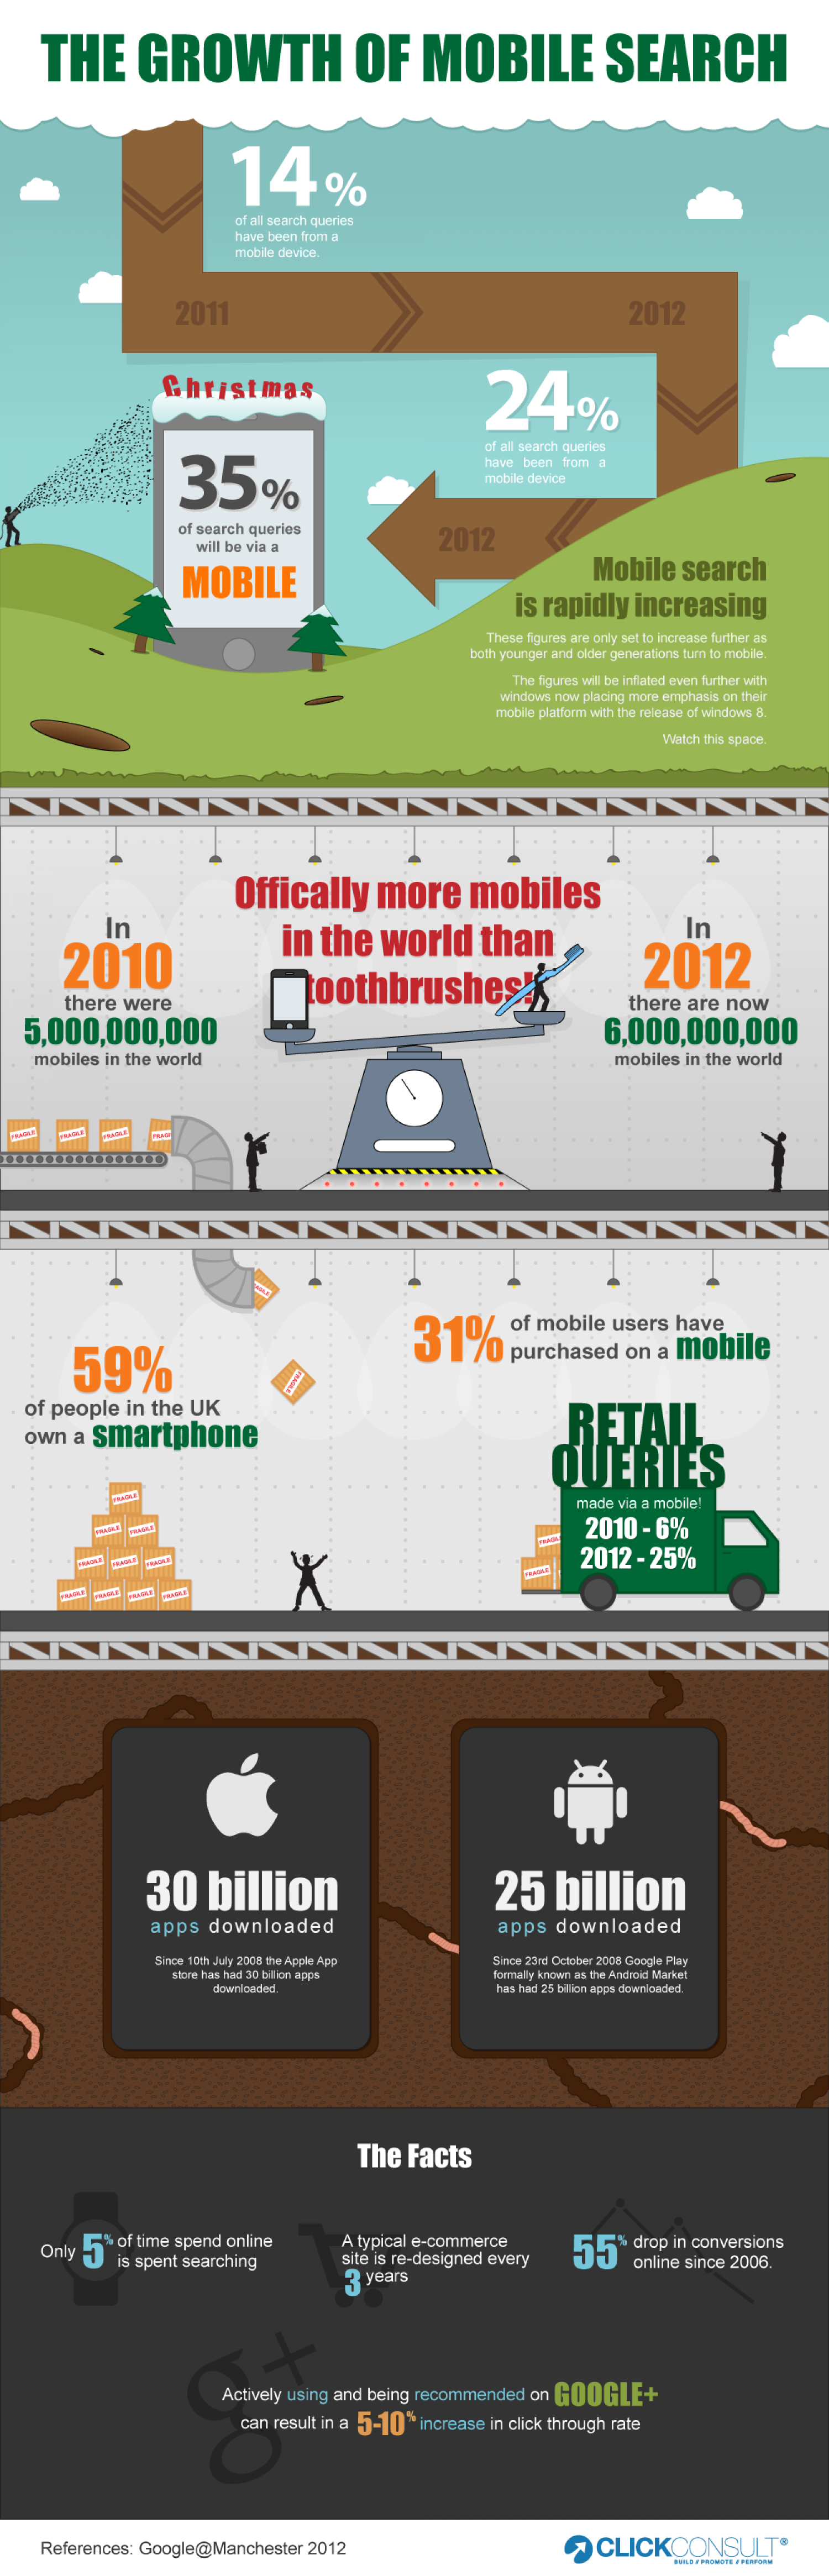 The Growth of Mobile Search Infographic